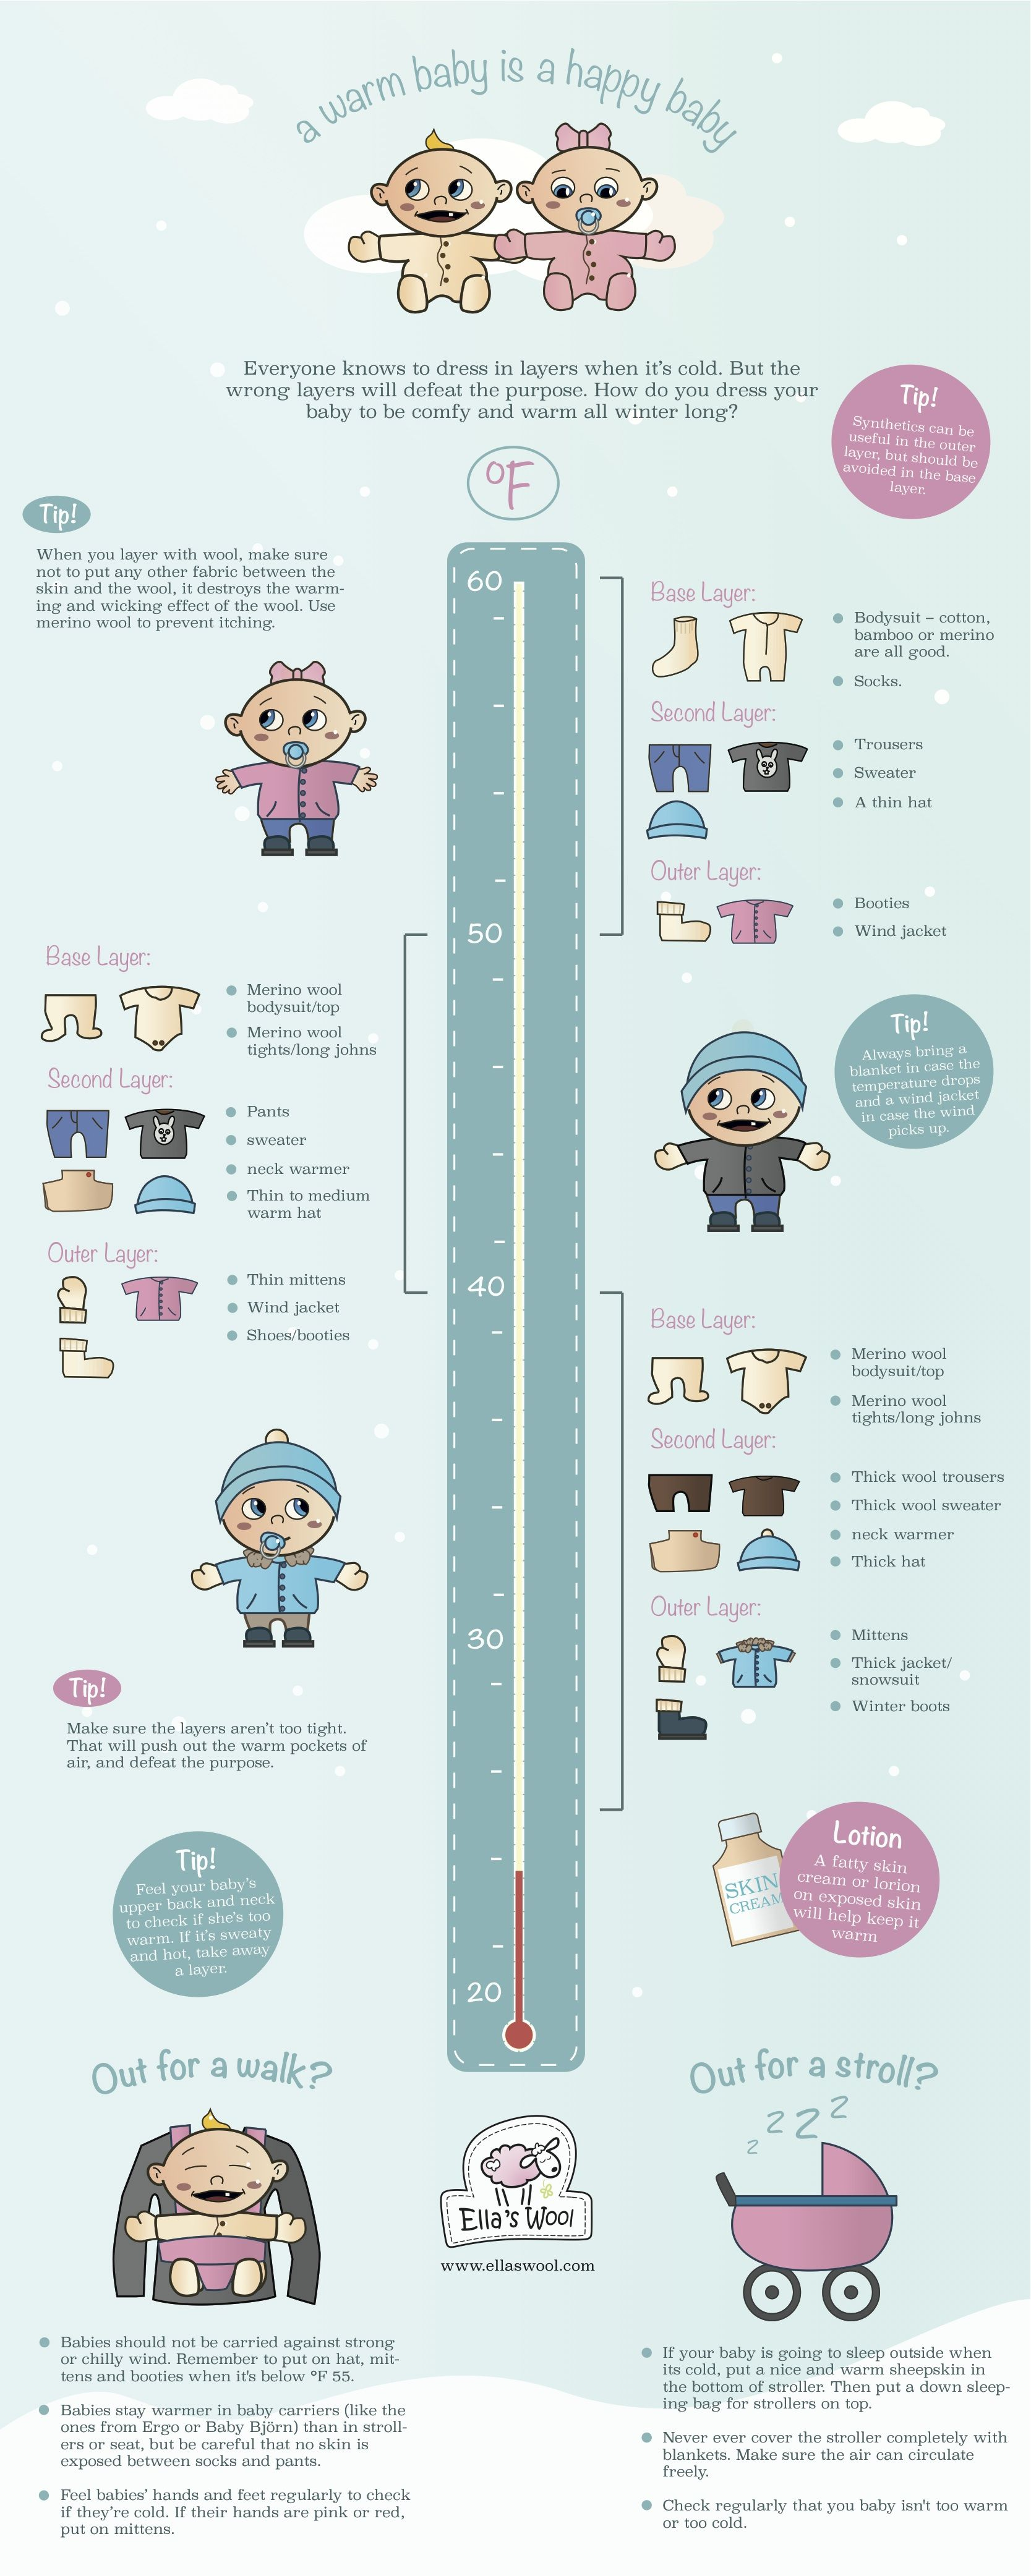 2d302ea249d1 How to dress your baby for cold weather (infographic)